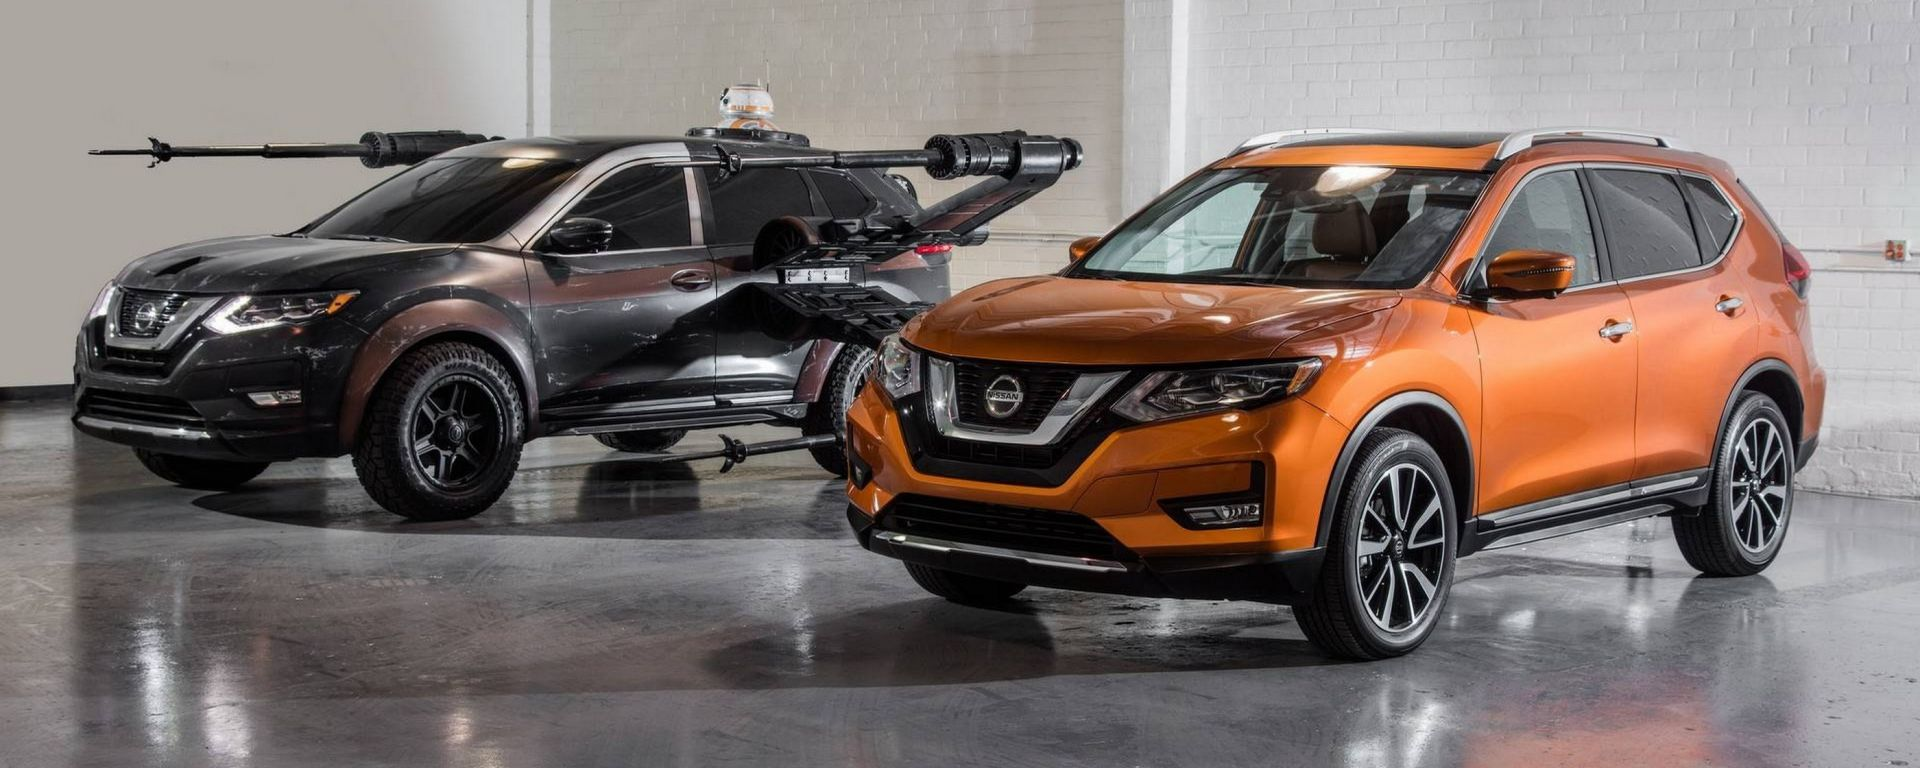 Nissan Rogue Poe Dameron's X-wing with BB-8